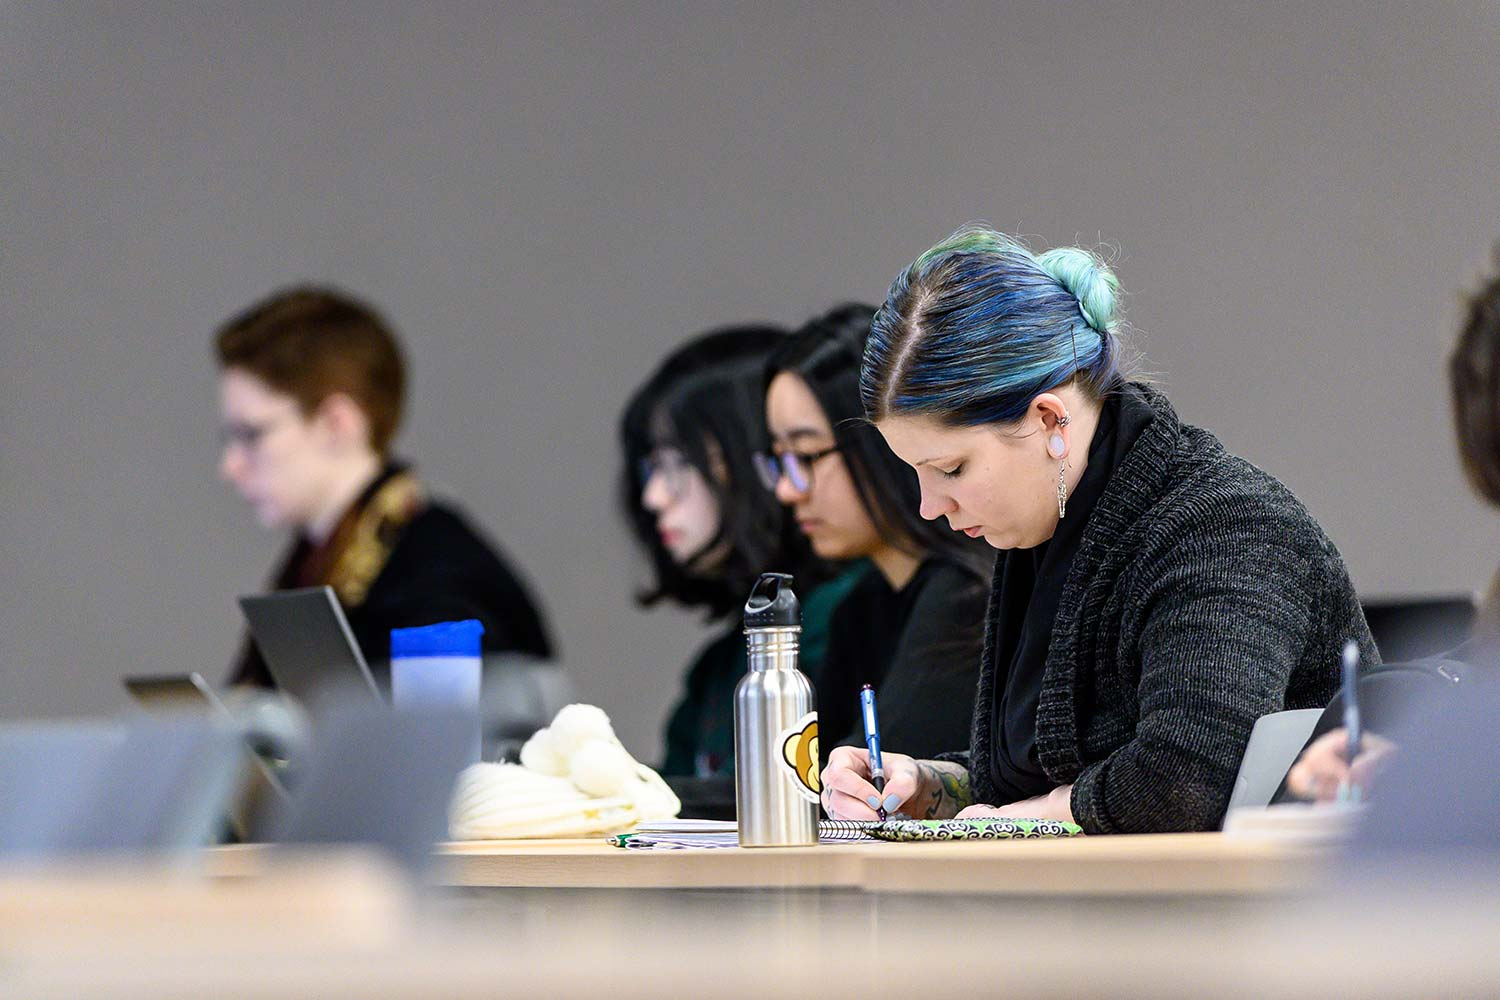 centre-for-migration-studies-students-studying